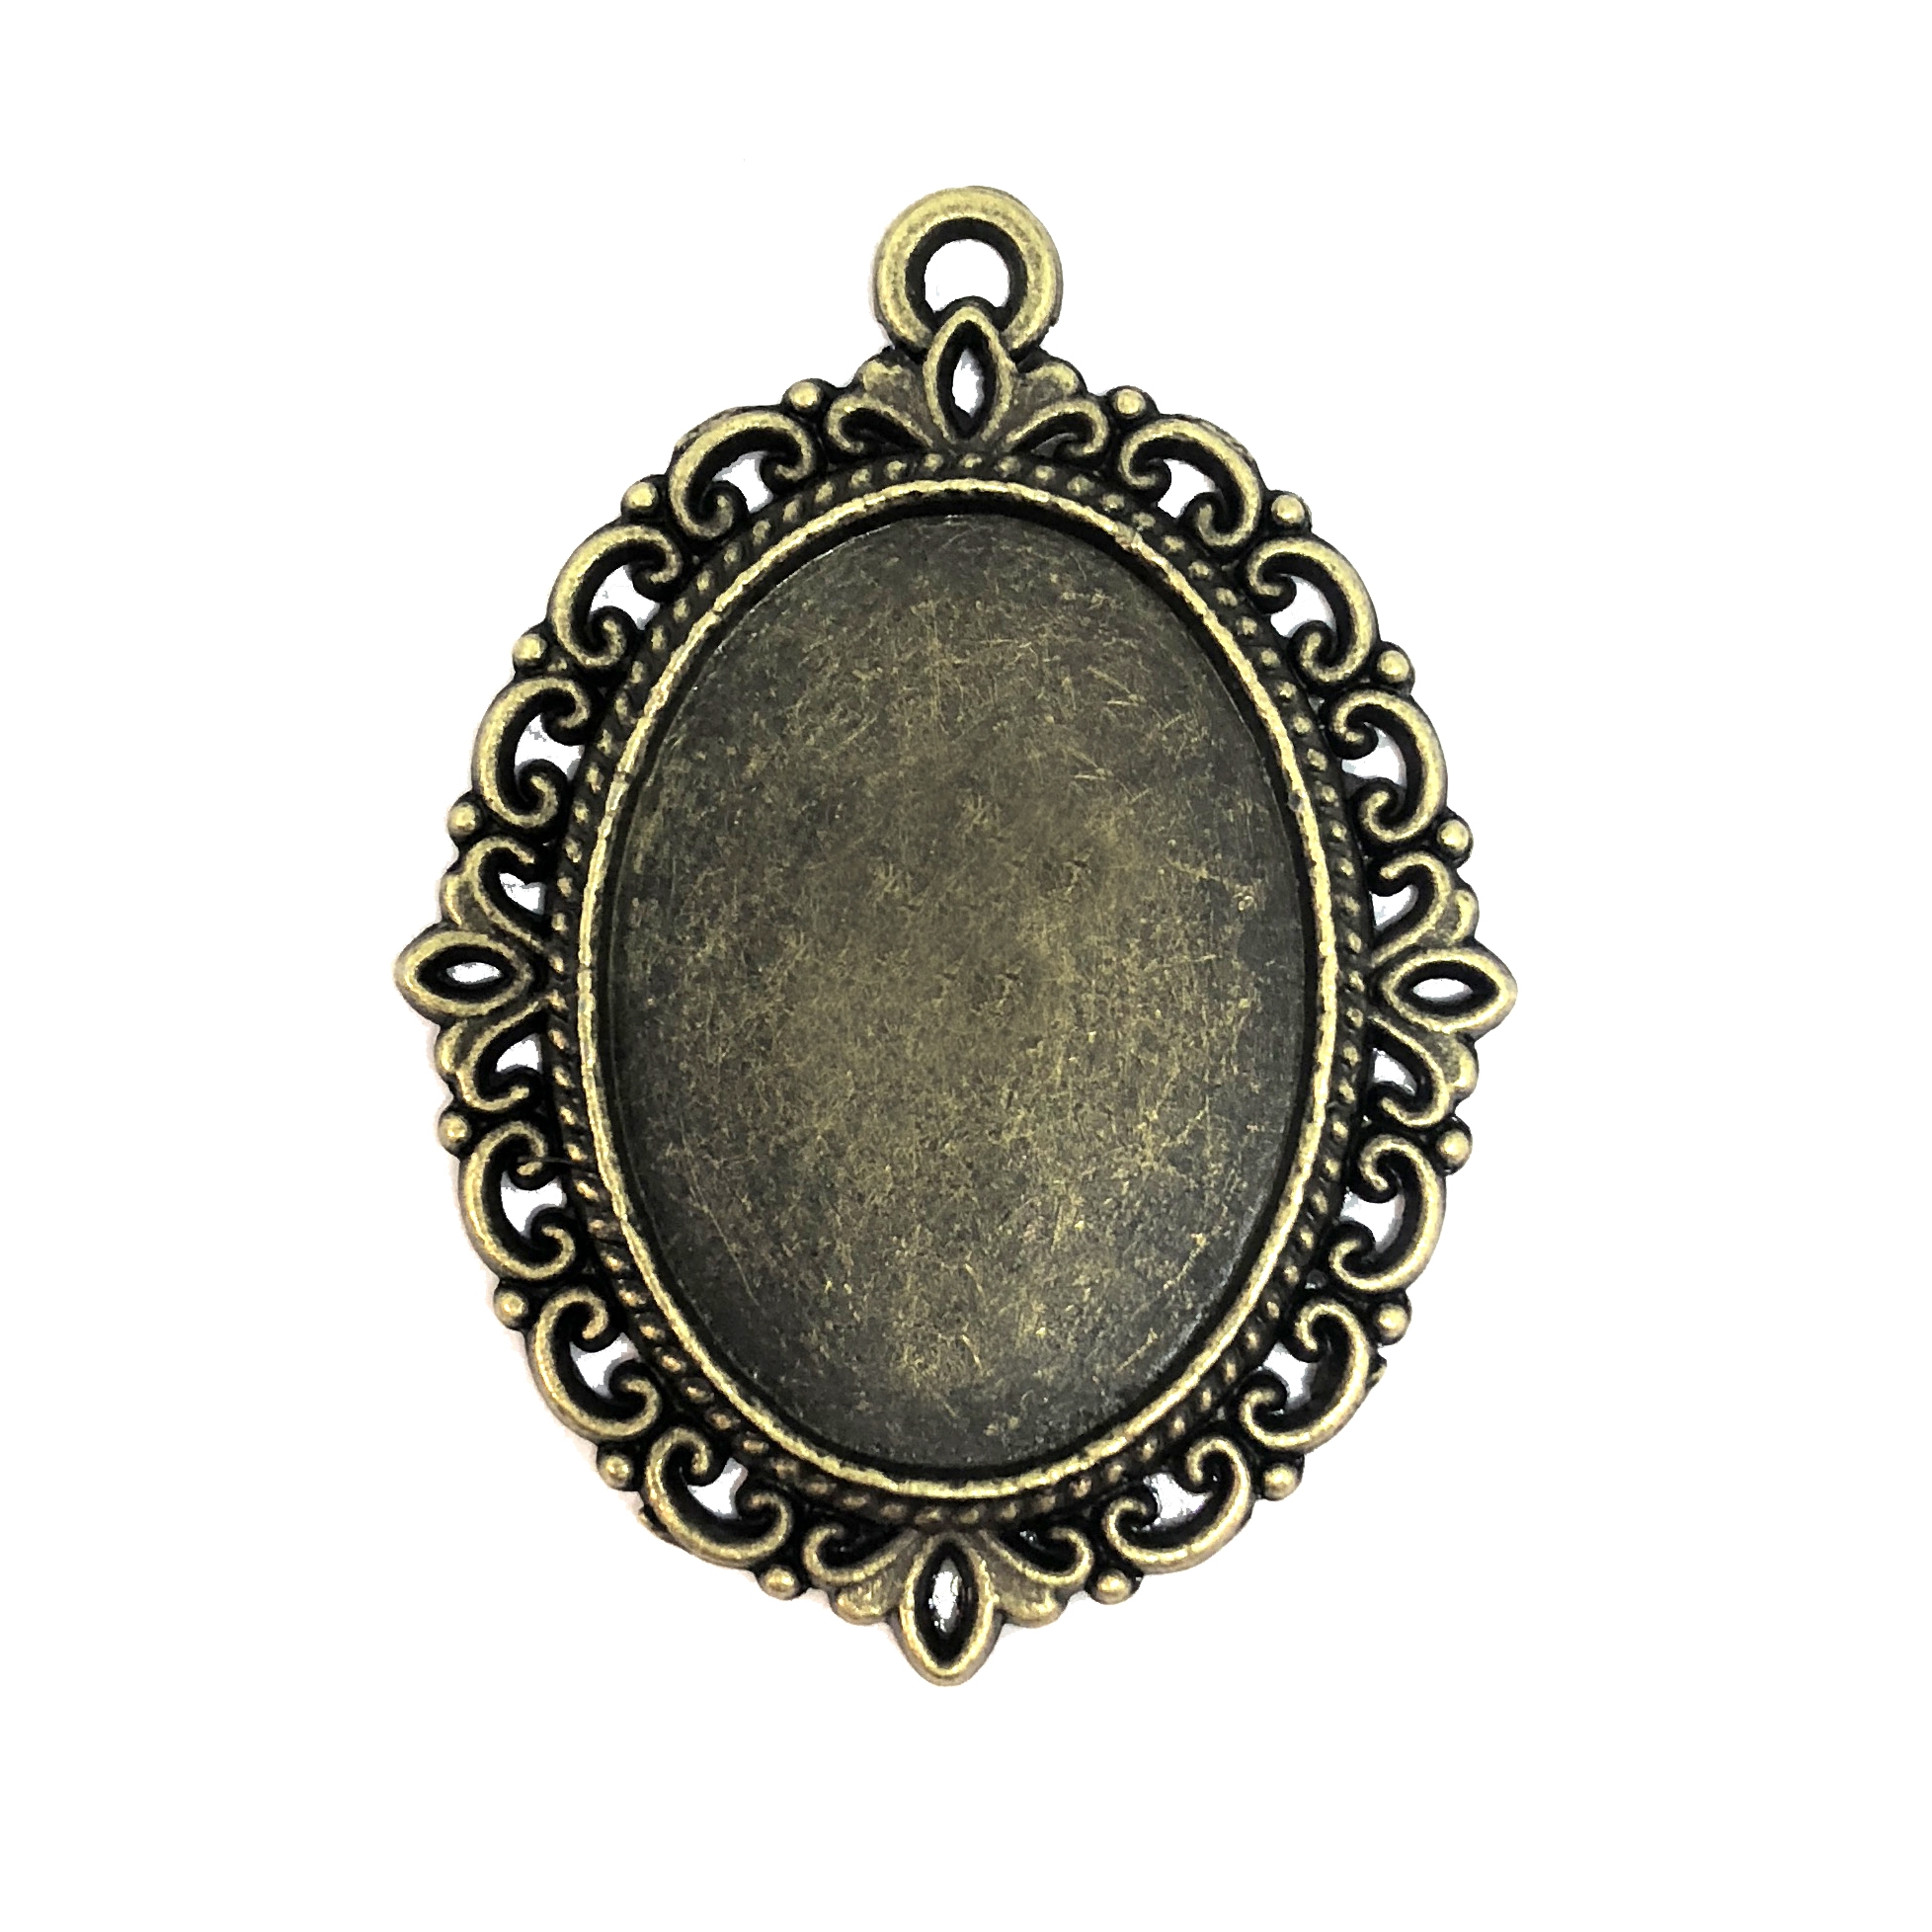 Oval Pendant Mount, bezel, 08303, mount, ceralun, jewelry supplies, B'sue Boutiques, 25x18mm mount, filigree border, bronze finish, pendant, charm, oval